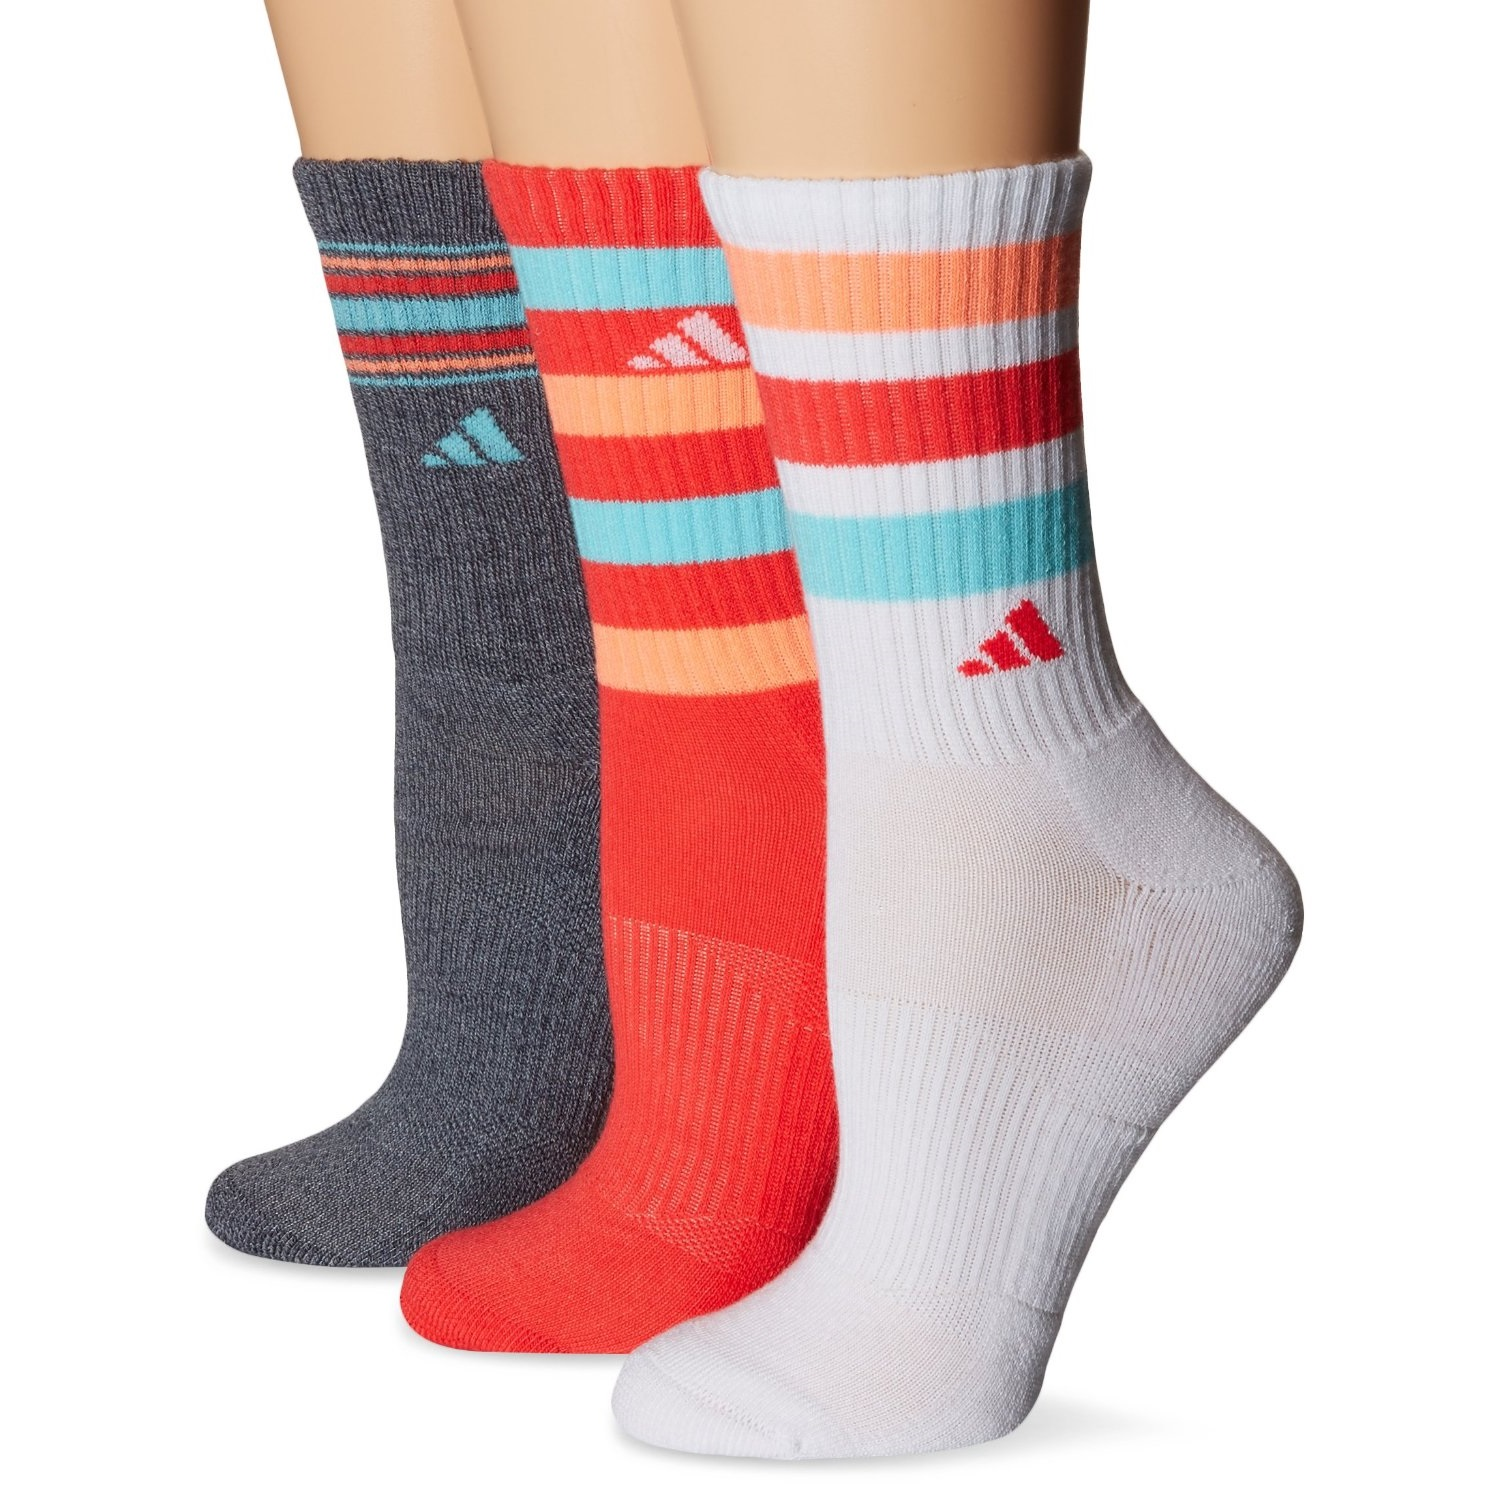 Adidas Cushioned Color Crew Socken 3 Pack Schwarz Onix Marl